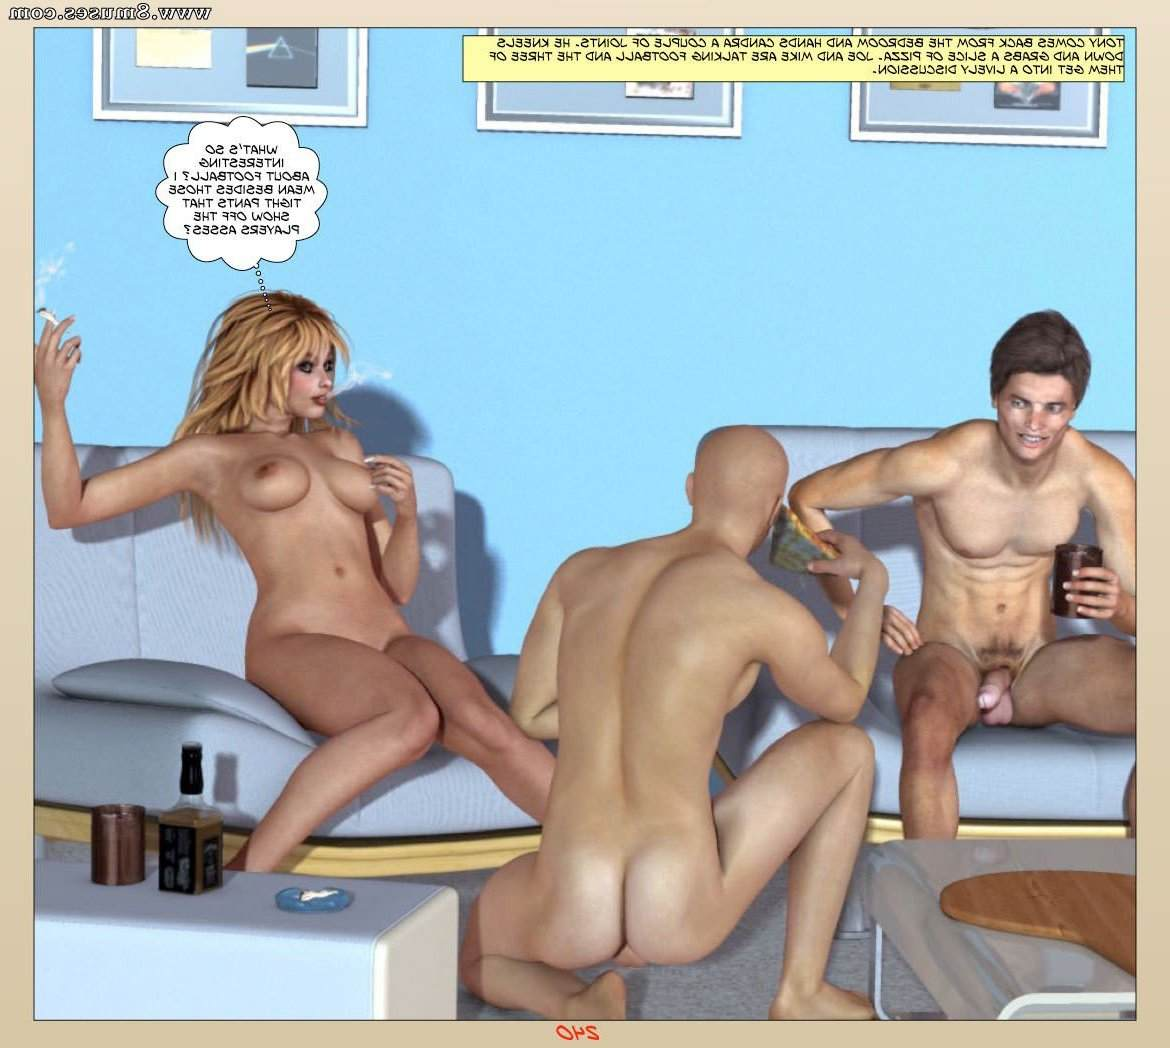 Digital-Empress-Captain-Trips-Comics/Odd-Jobs-Candra-Misky Odd_Jobs_-_Candra_Misky__8muses_-_Sex_and_Porn_Comics_240.jpg